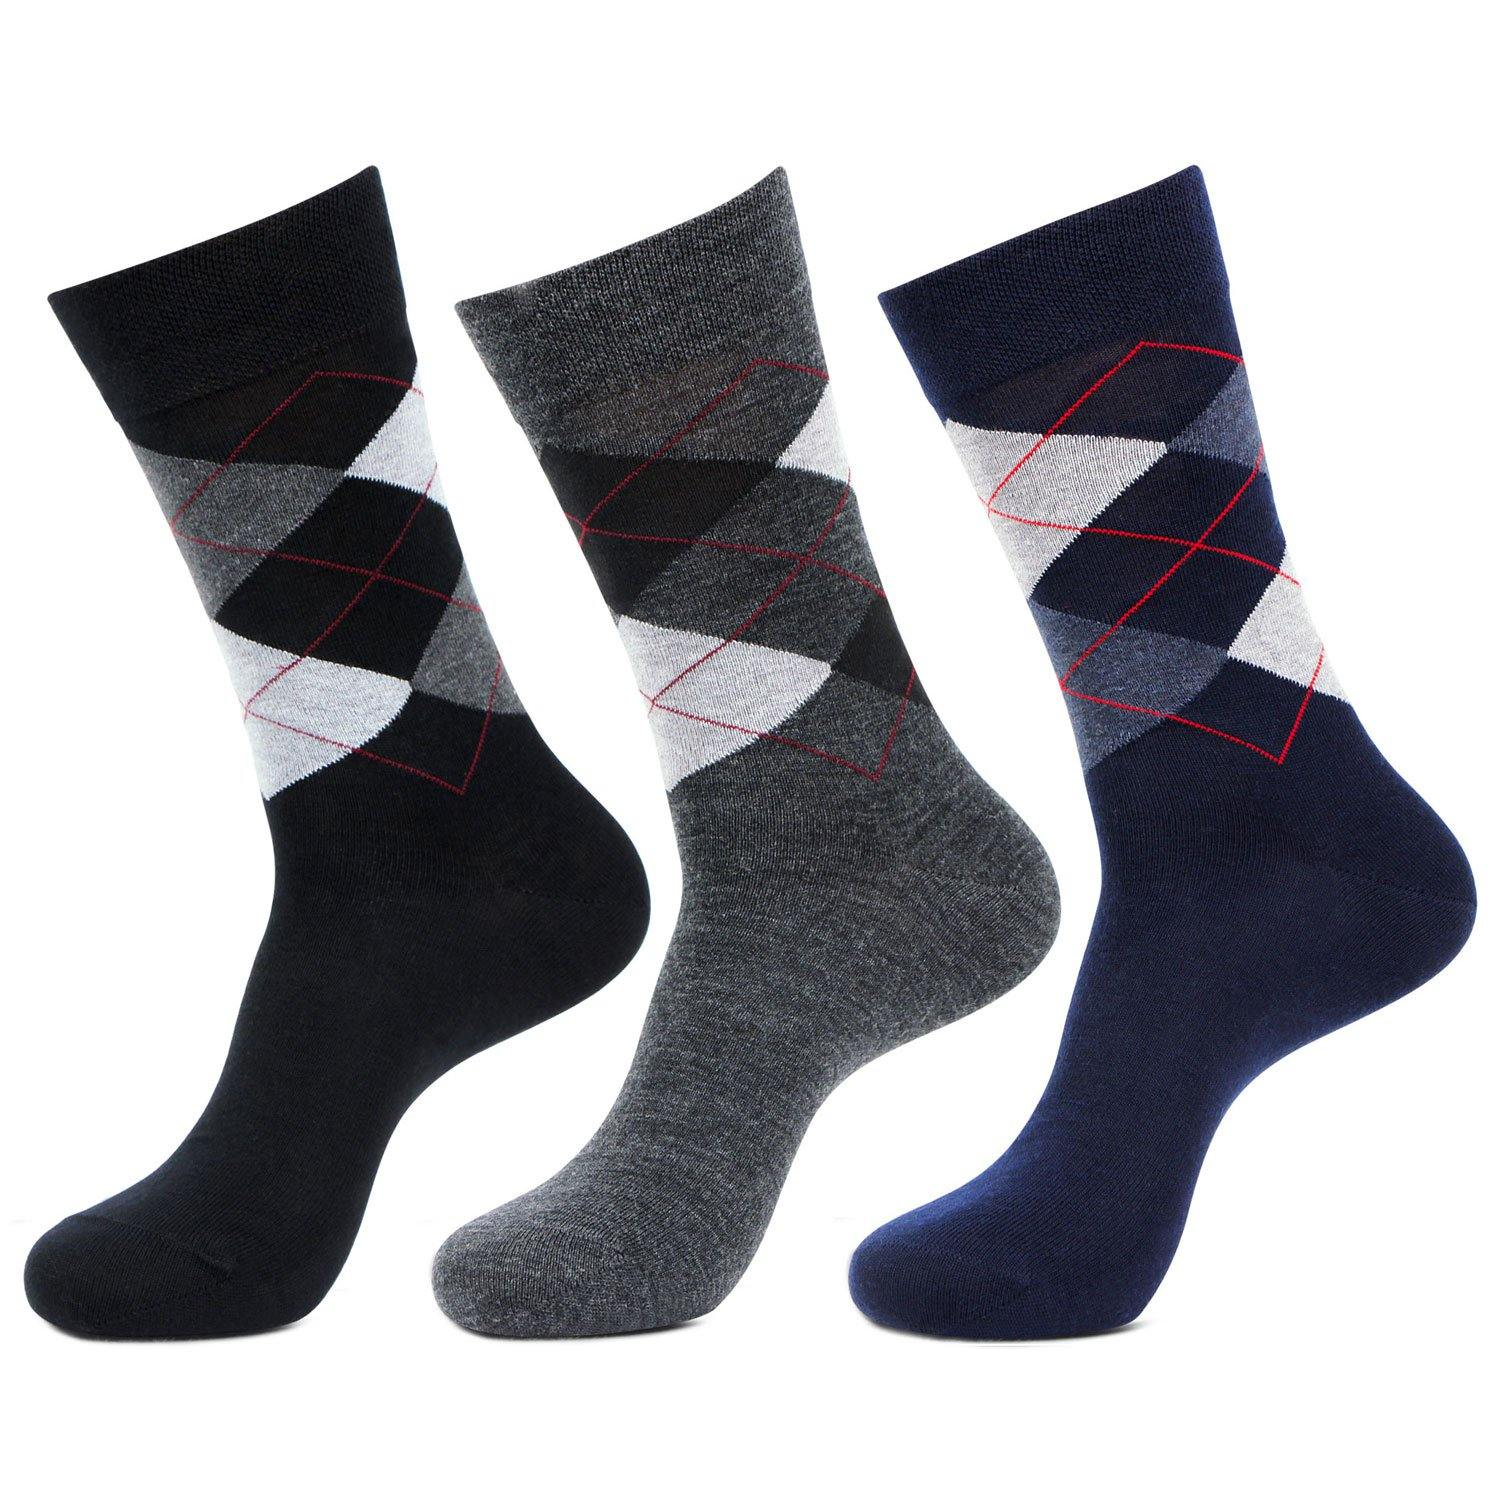 Men's Classic Argyle Multicolored Woolen Socks- Pack of 3